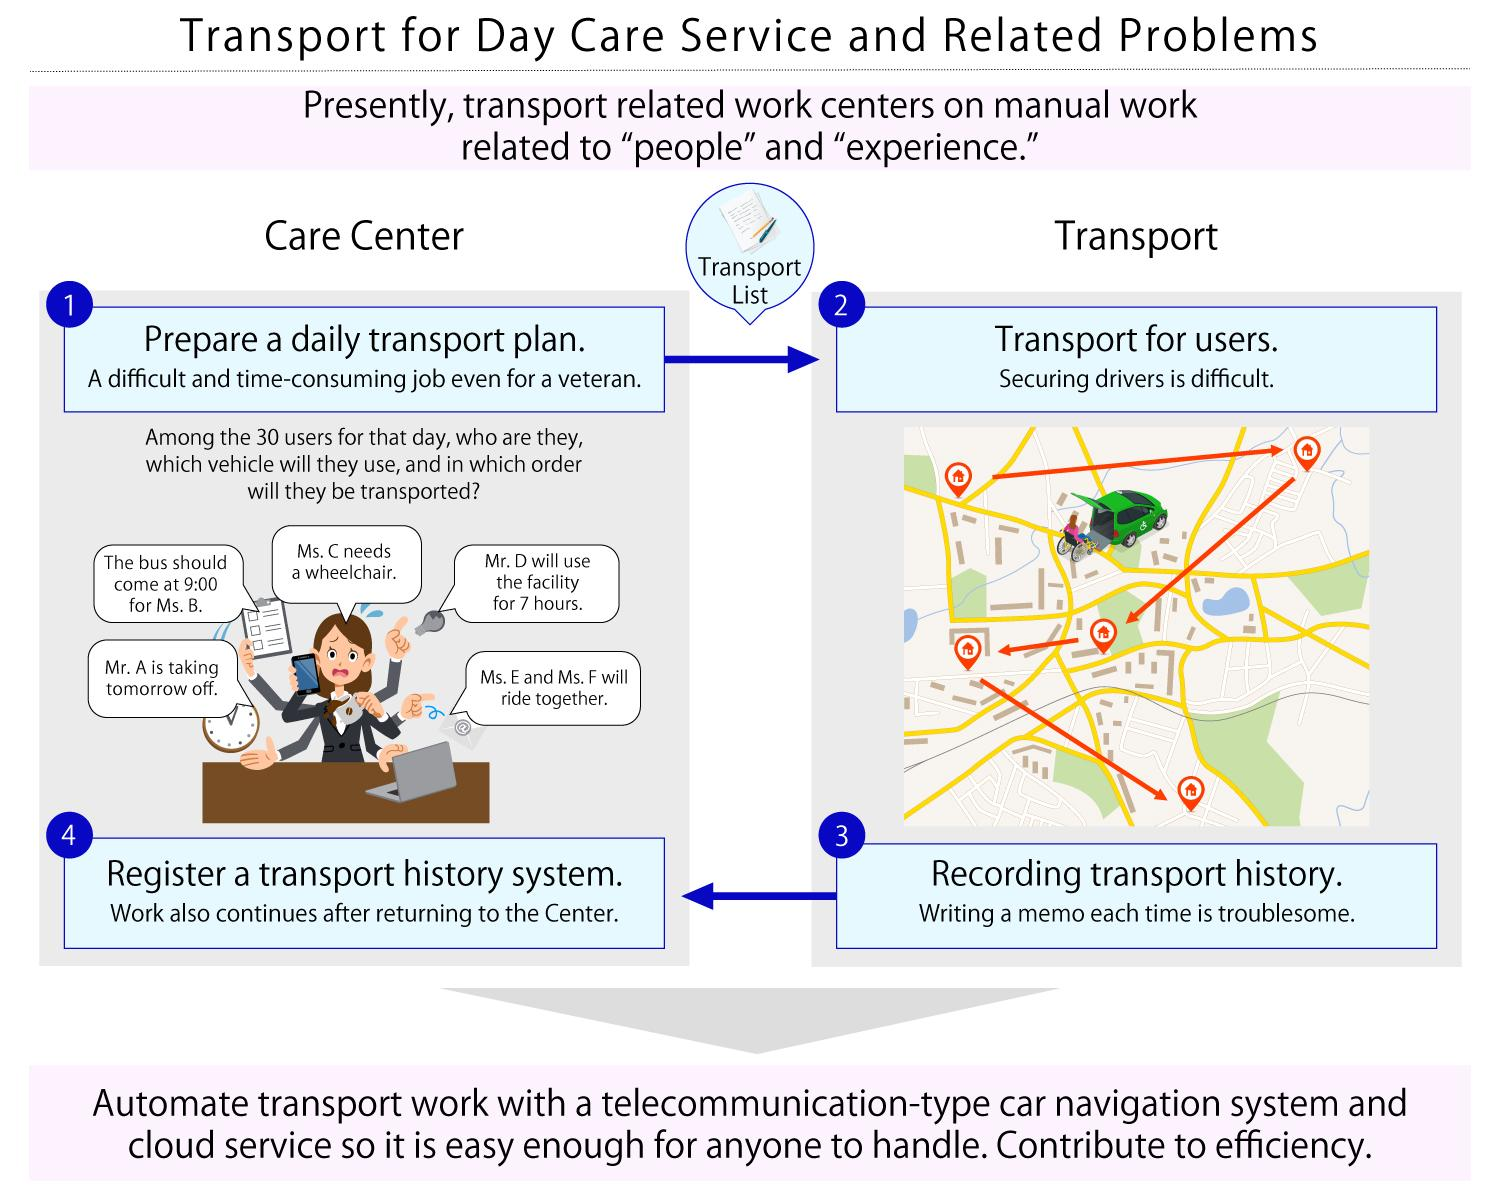 figure: Transport for Day care service and Related Problems